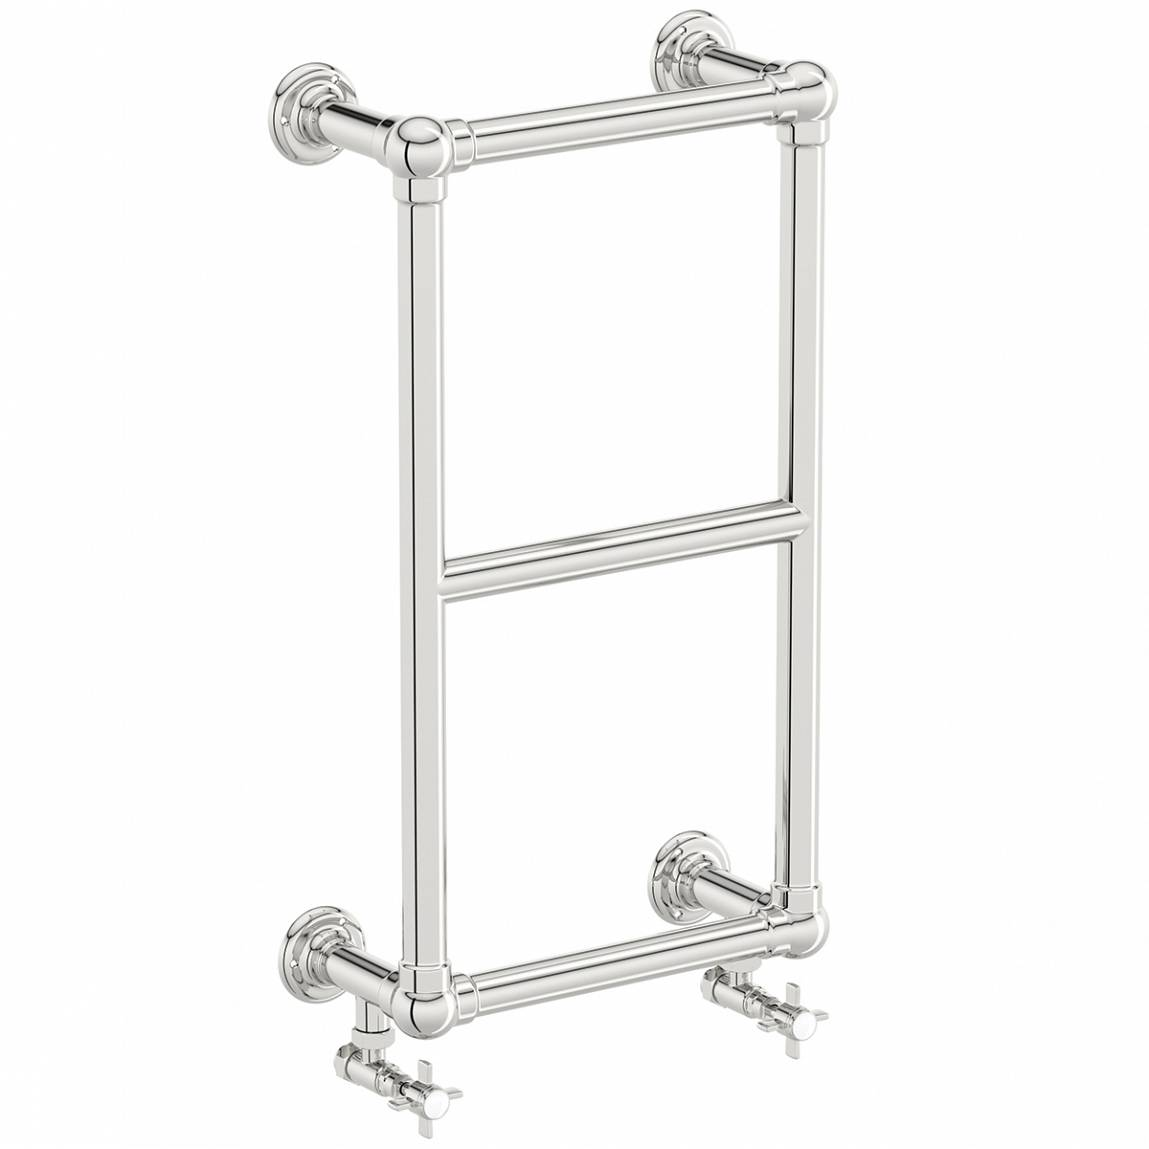 Image of Dorchester Heated Towel Rail 700 x 400